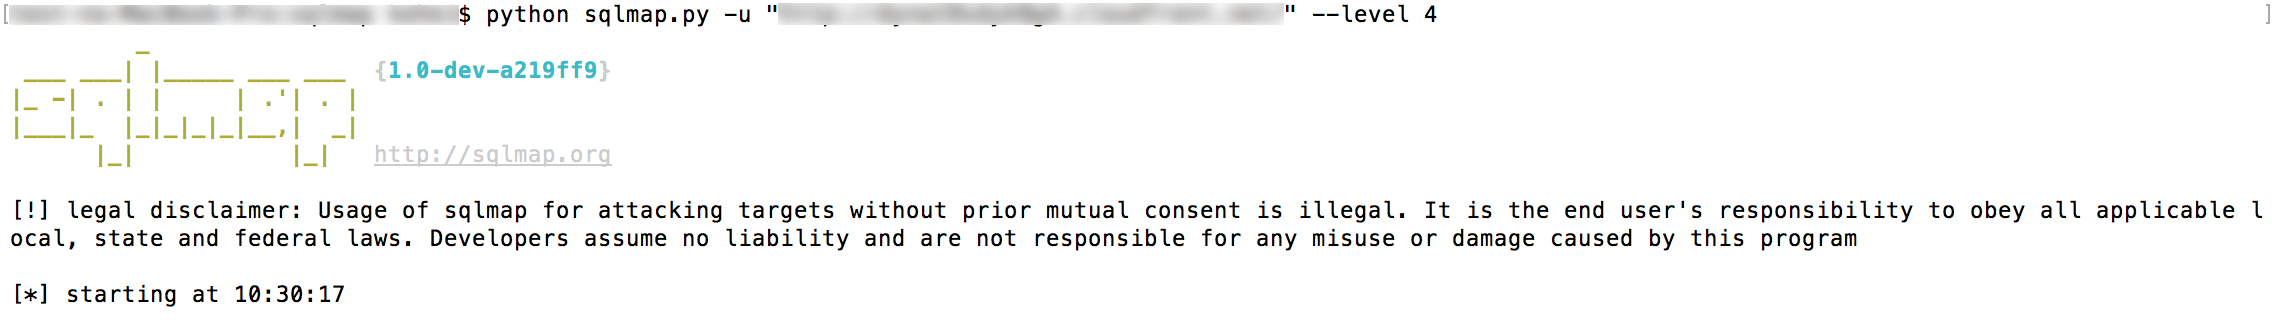 aws-waf_sql-injection_2015120419-1.png